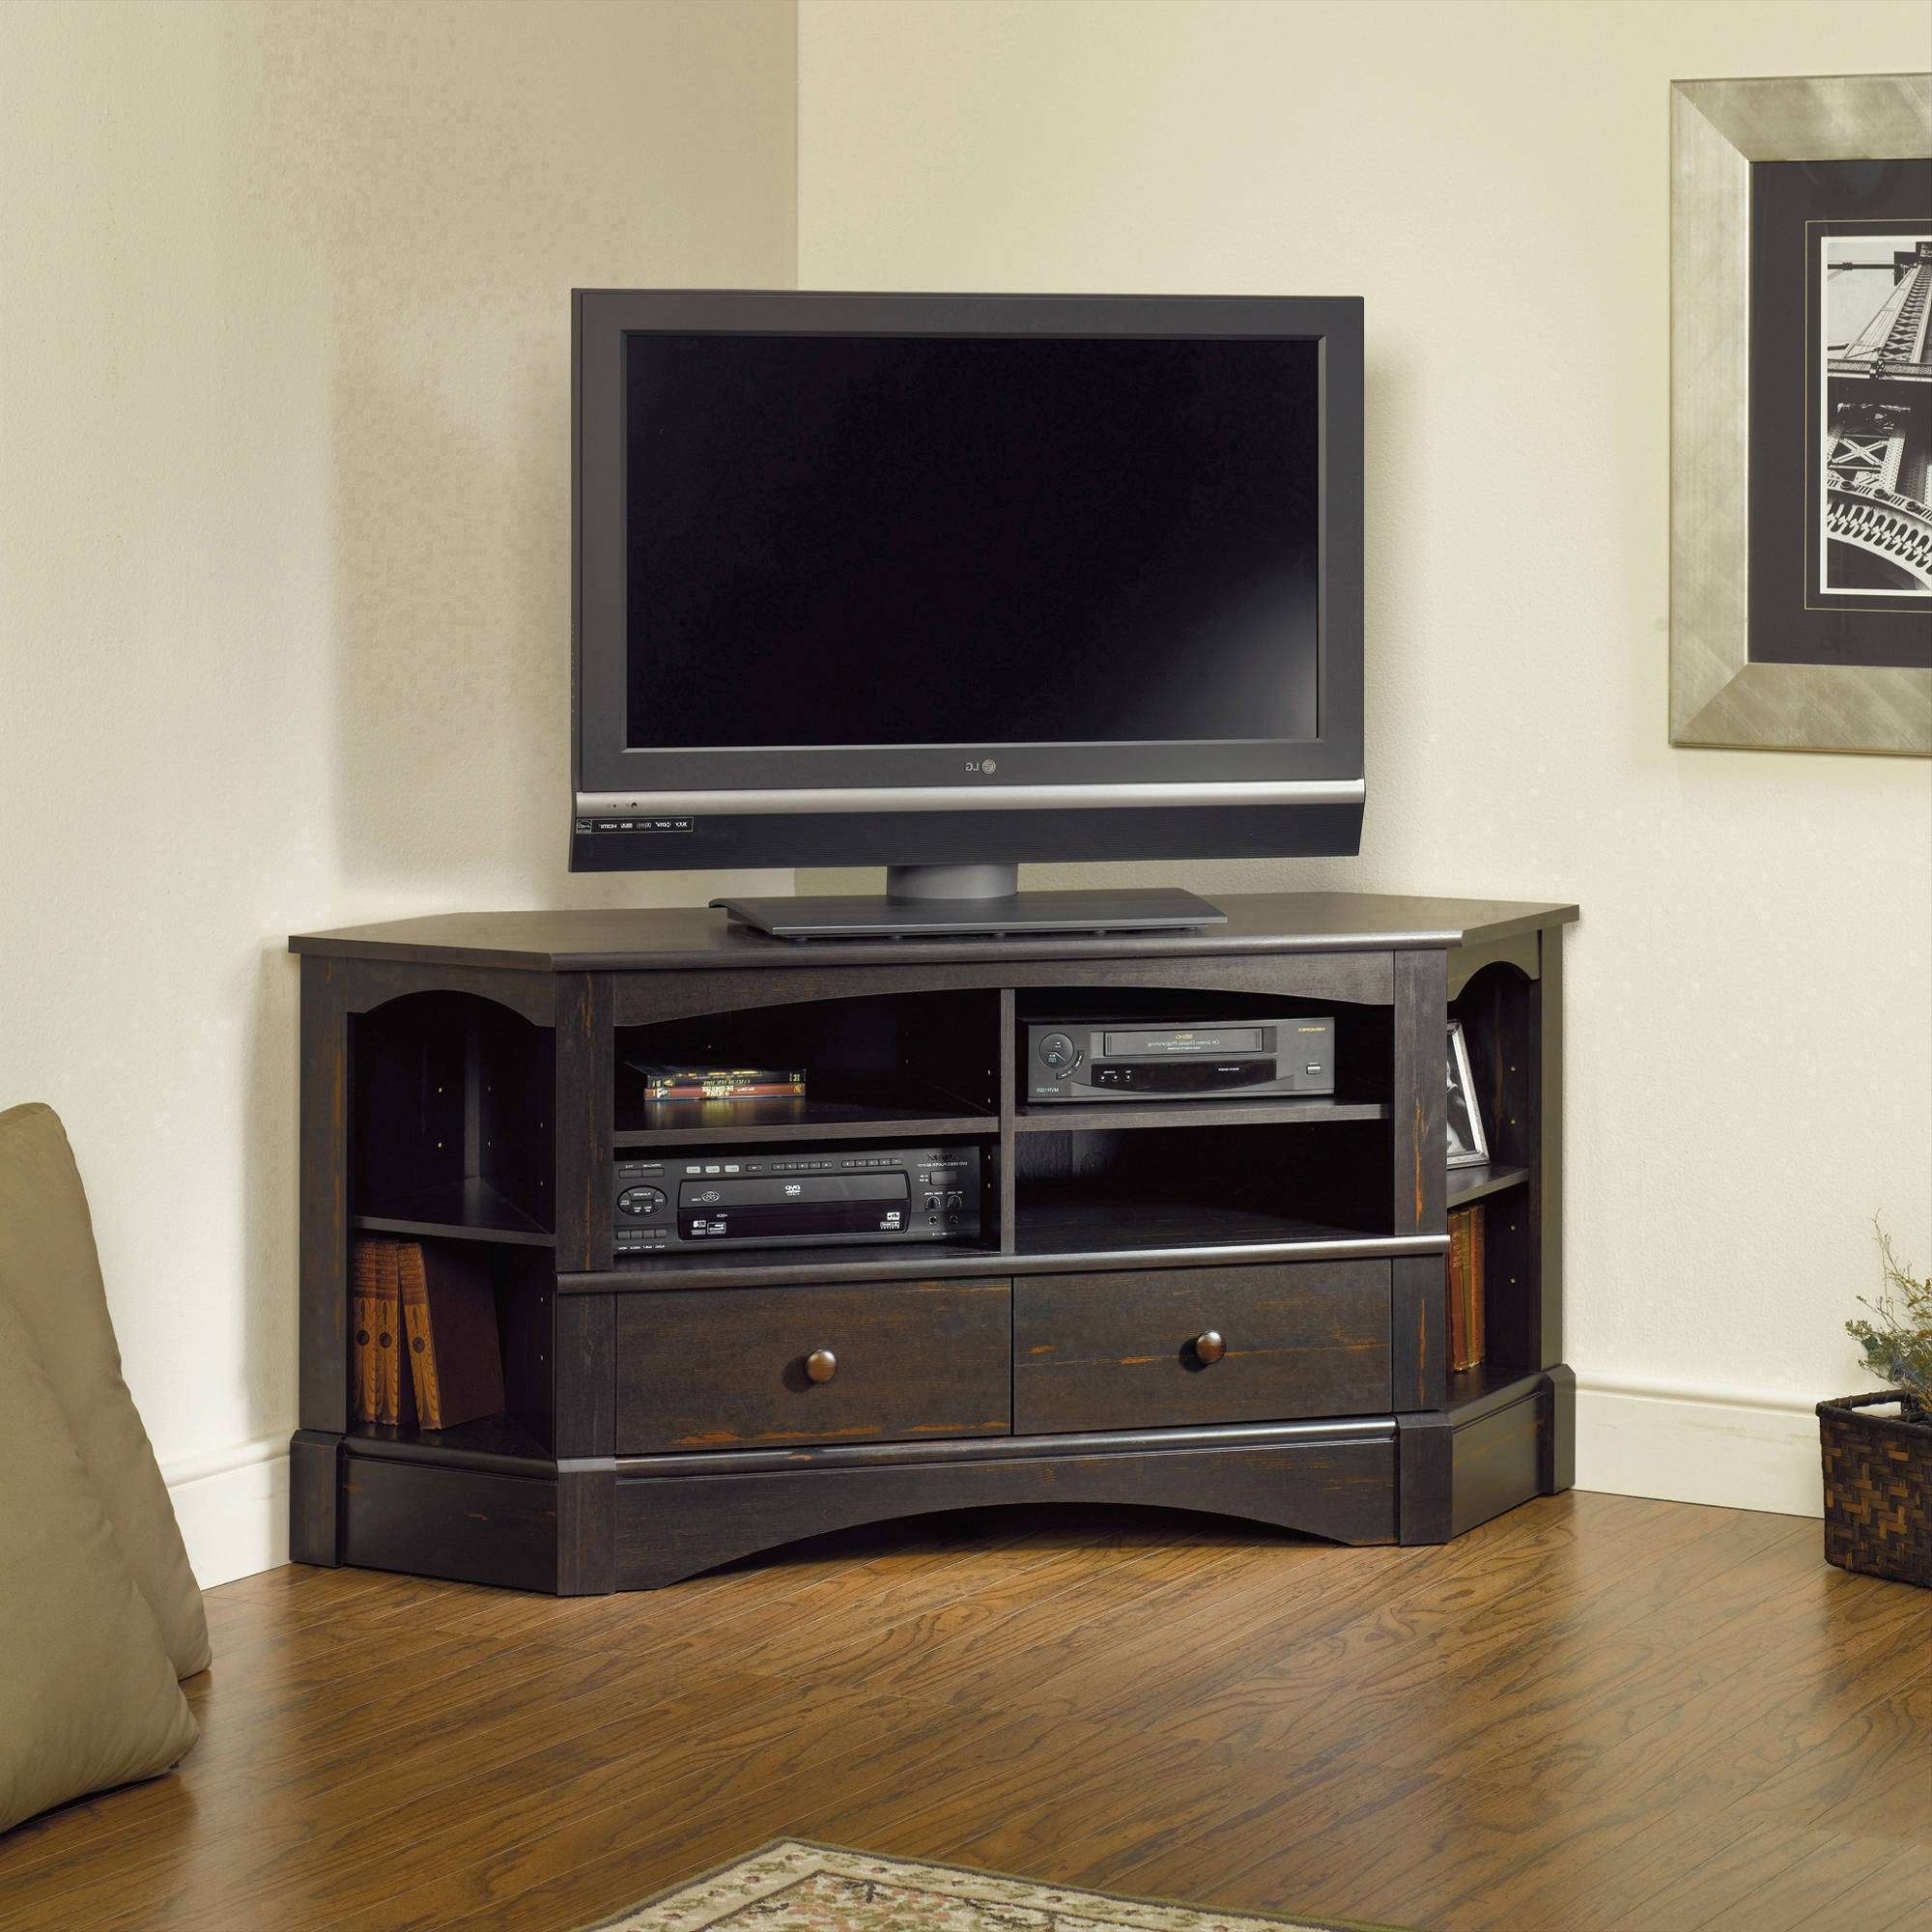 Sauder Harbor View Corner Entertainment Credenza For Tvs Up To 42 Throughout Corner Tv Stands 46 Inch Flat Screen (View 10 of 15)